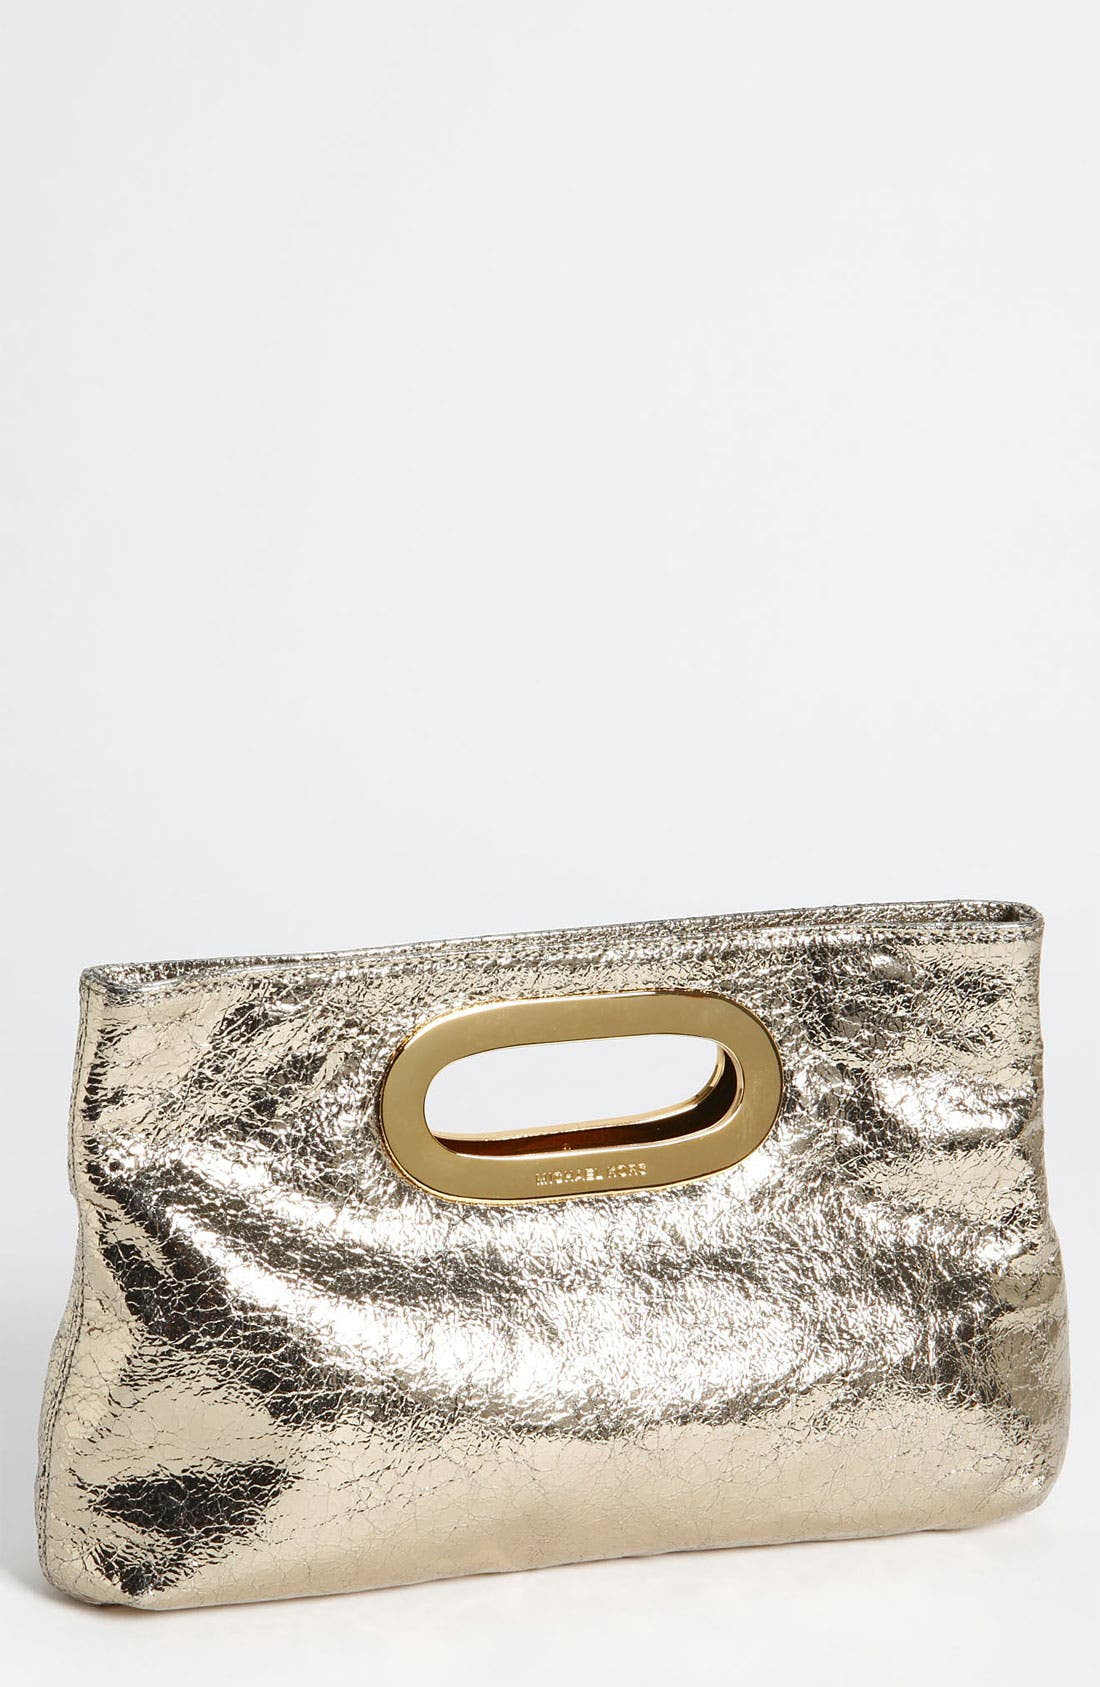 Main Image - MICHAEL Michael Kors 'Berkley' Clutch